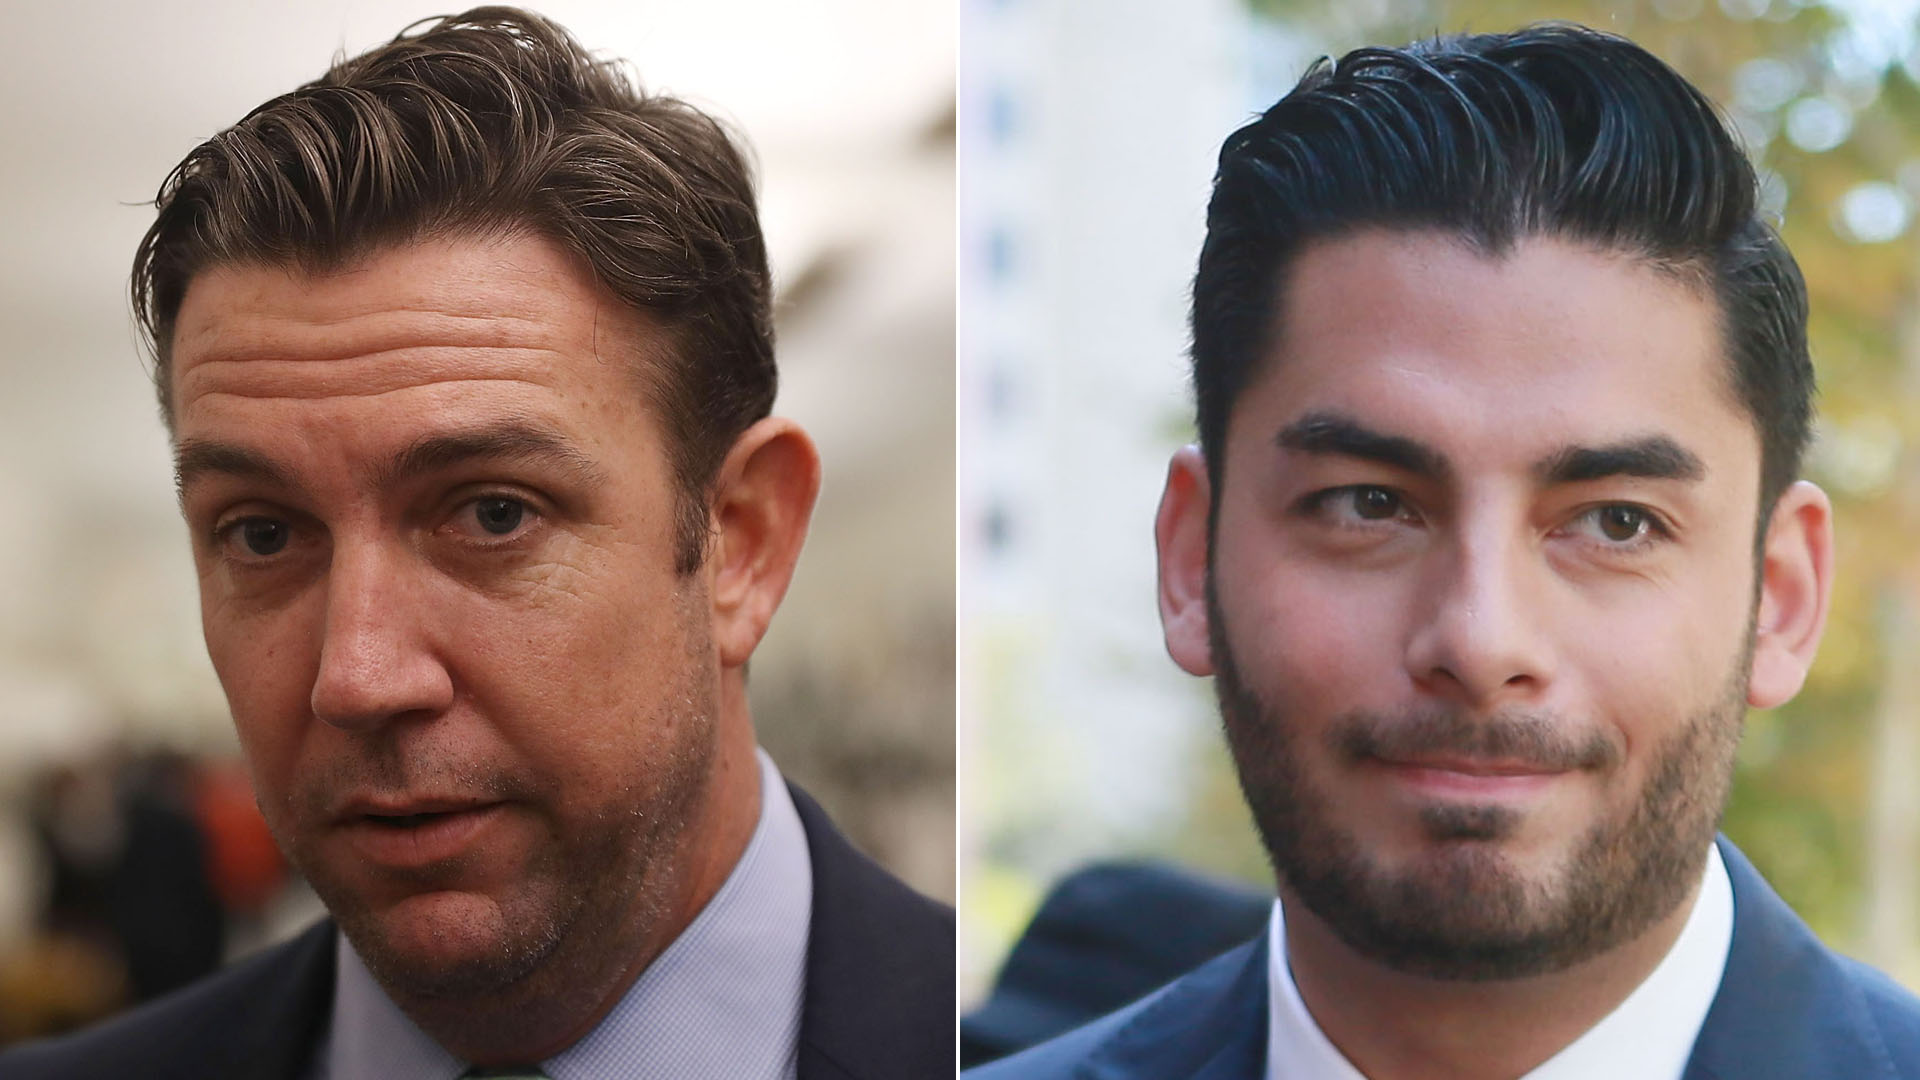 Duncan Hunter, left, speaks to reporters on Jan. 10, 2017 in Washington, D.C. Ammar Campa-Najjar, right, speaks to reporters outside the San Diego Federal Curthouse during Hunter's arraignment on Aug. 23, 2018. (Credit: Getty Images)